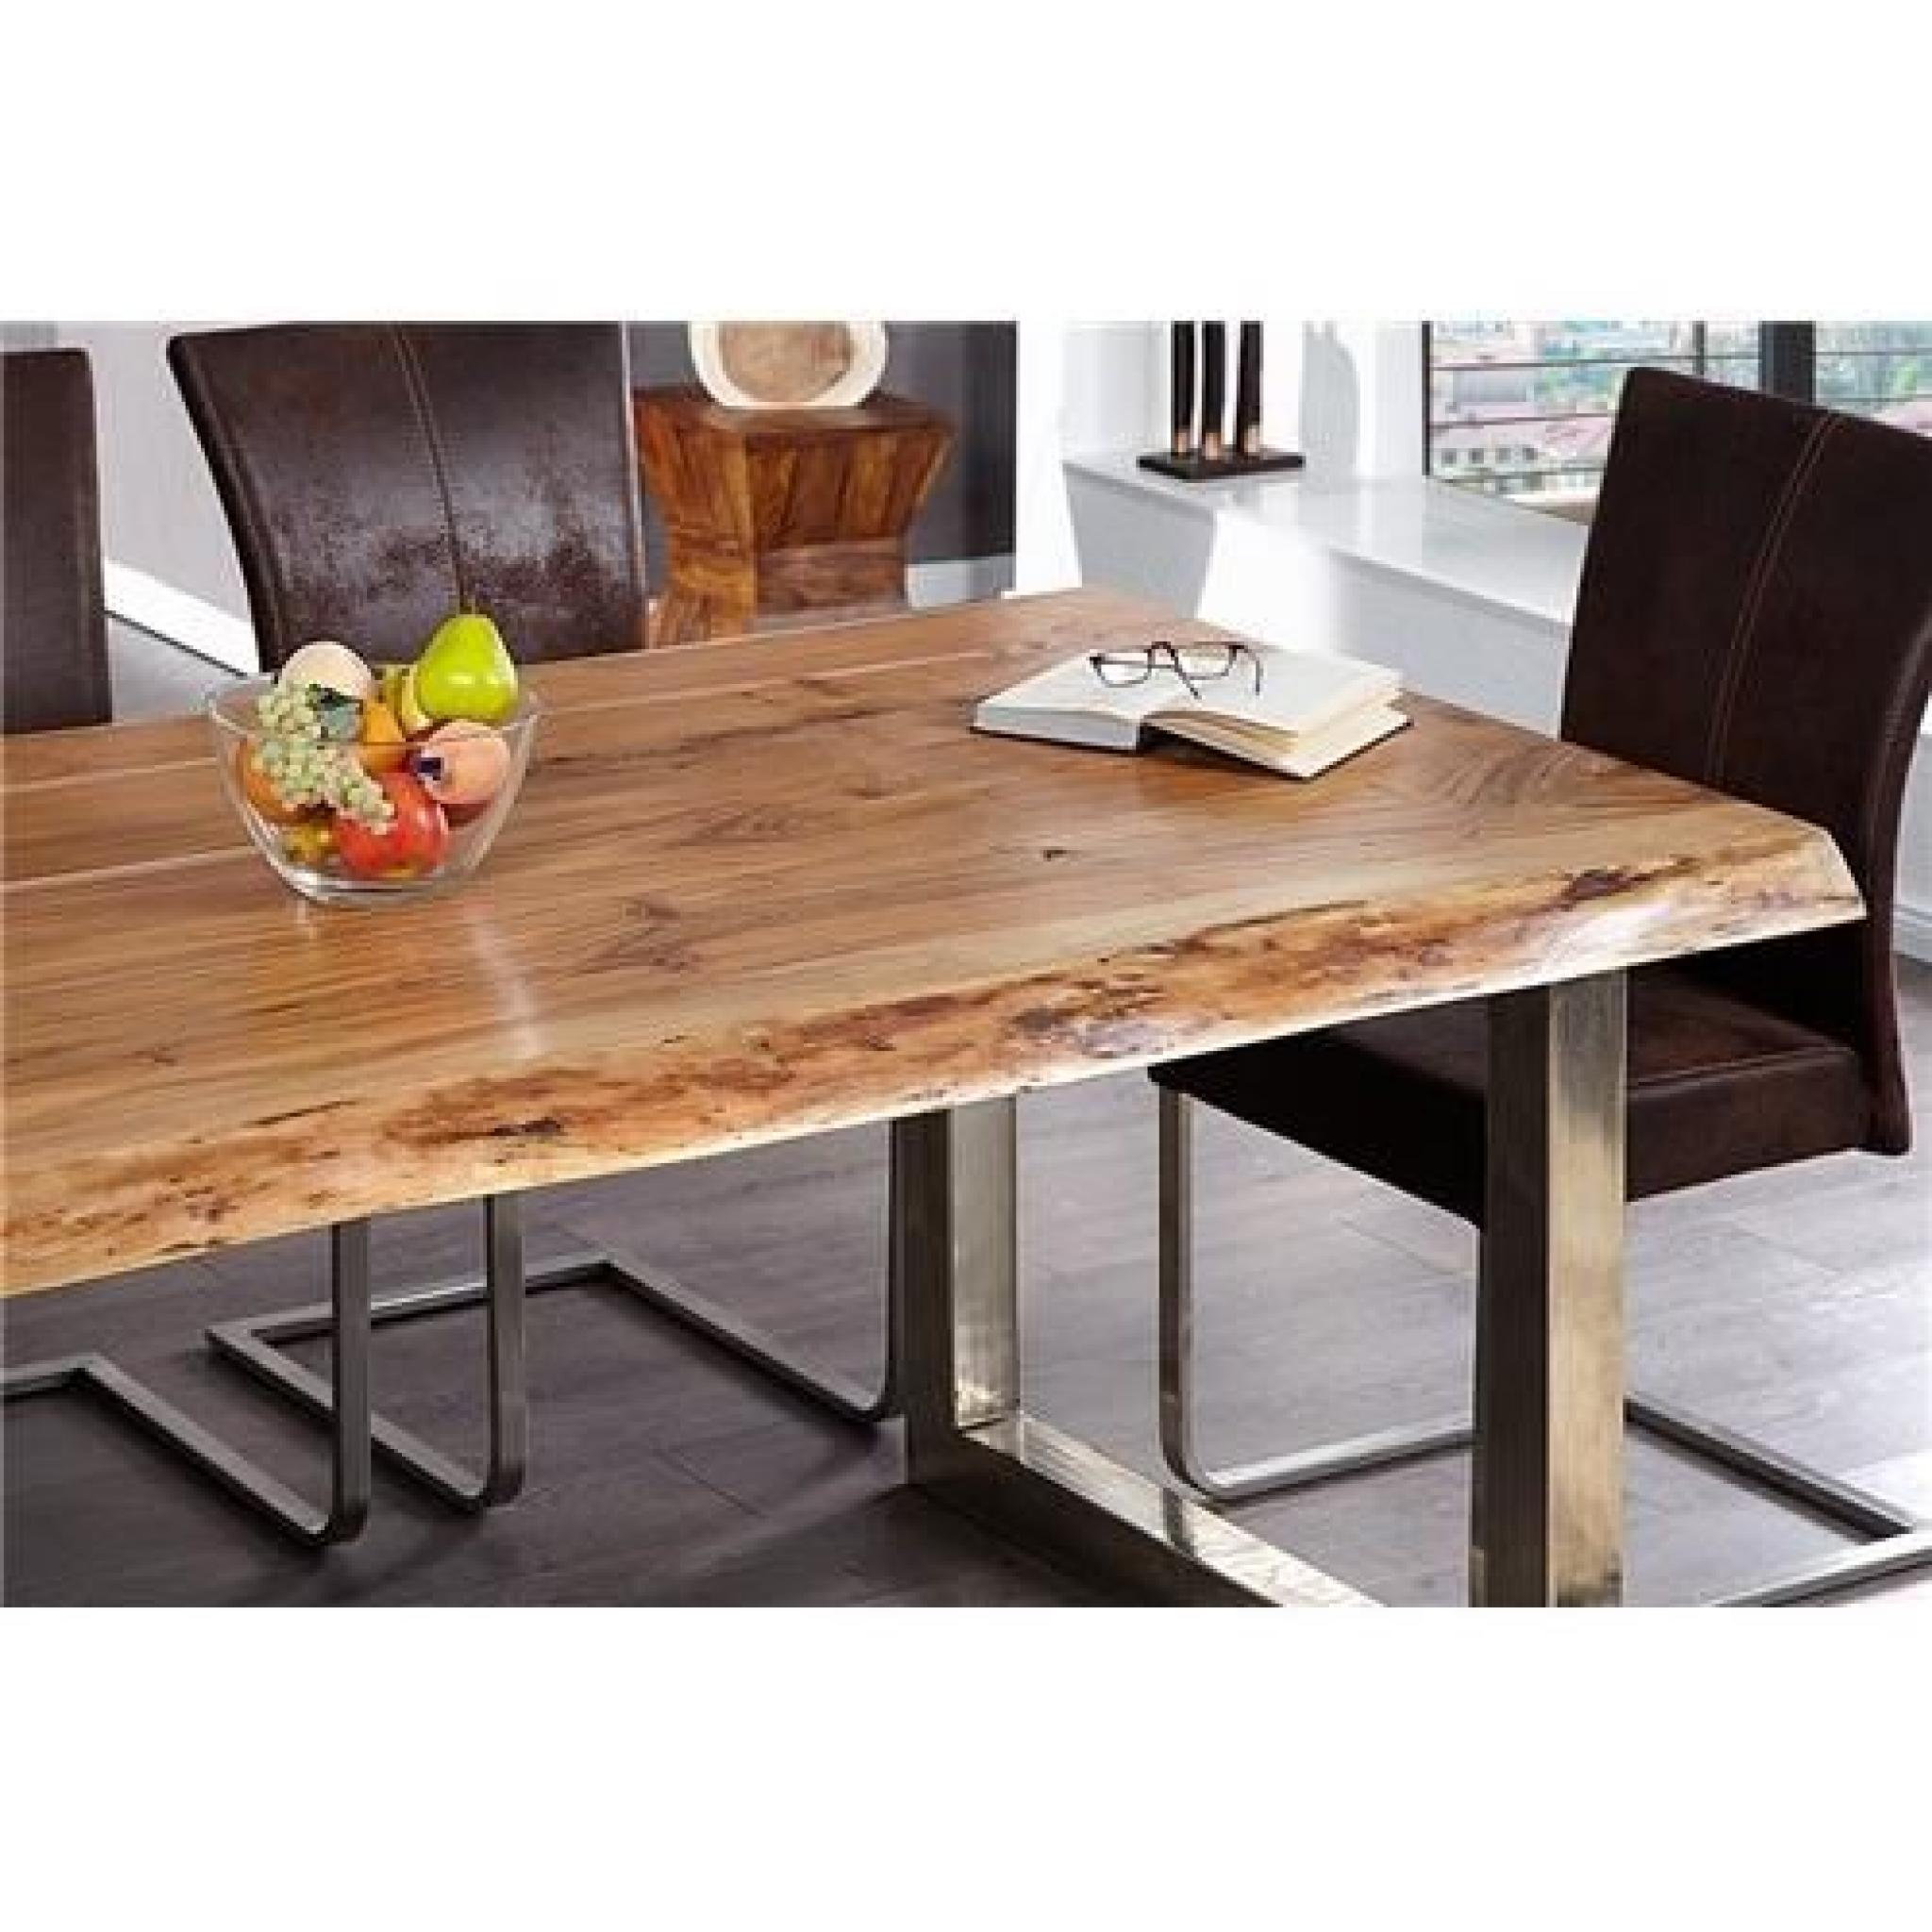 Table a manger en bois pas cher maison design for Table a manger design pas cher